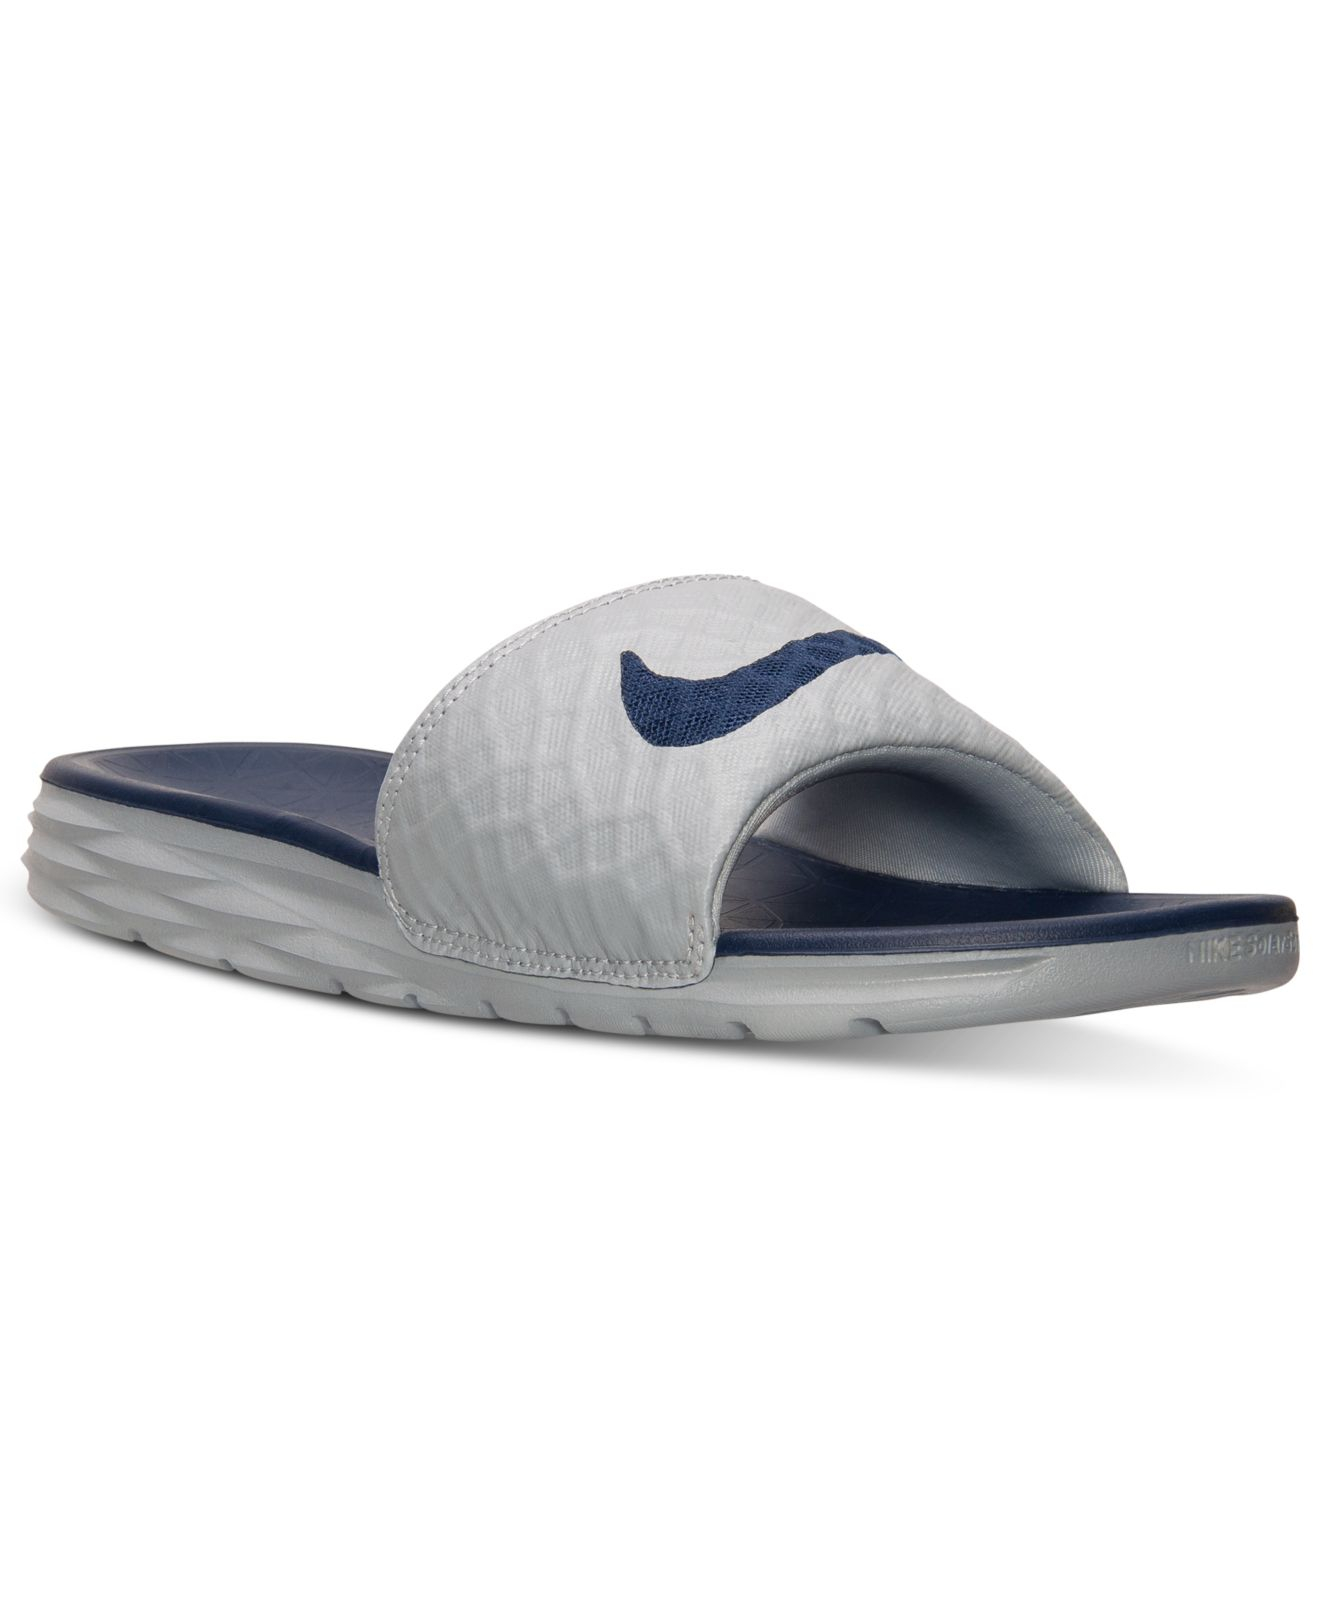 d5ffbcfe0696 Nike Men s Benassi Solarsoft Slide 2 Sandals From Finish Line in ...